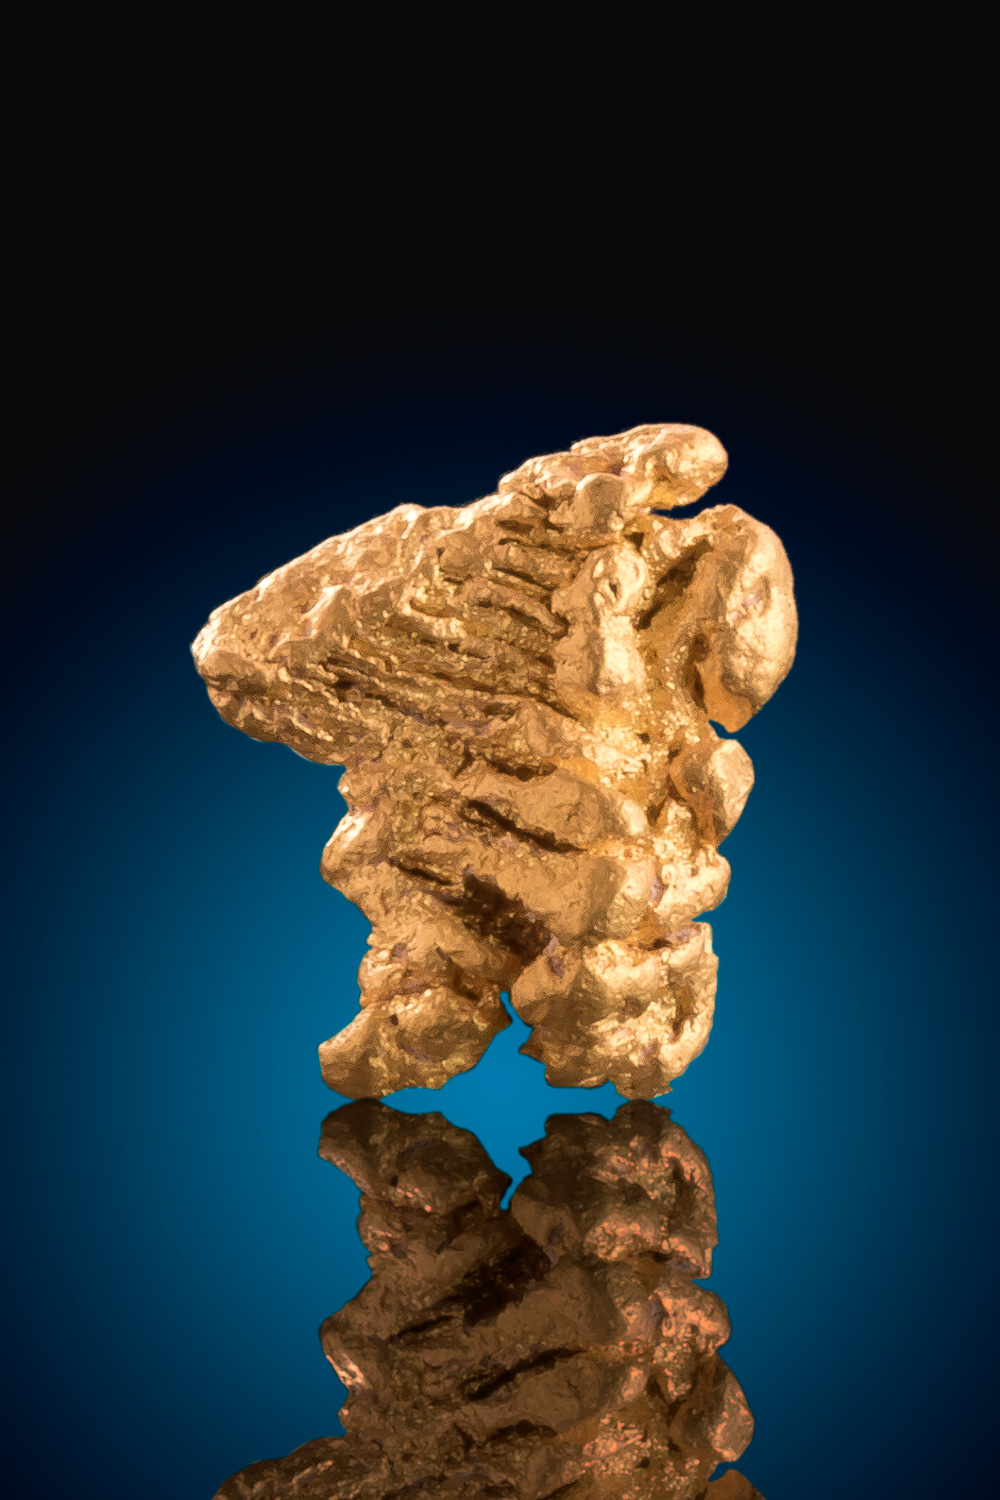 Beautiful Gold Crystal Nugget - Charters Towers, Australia